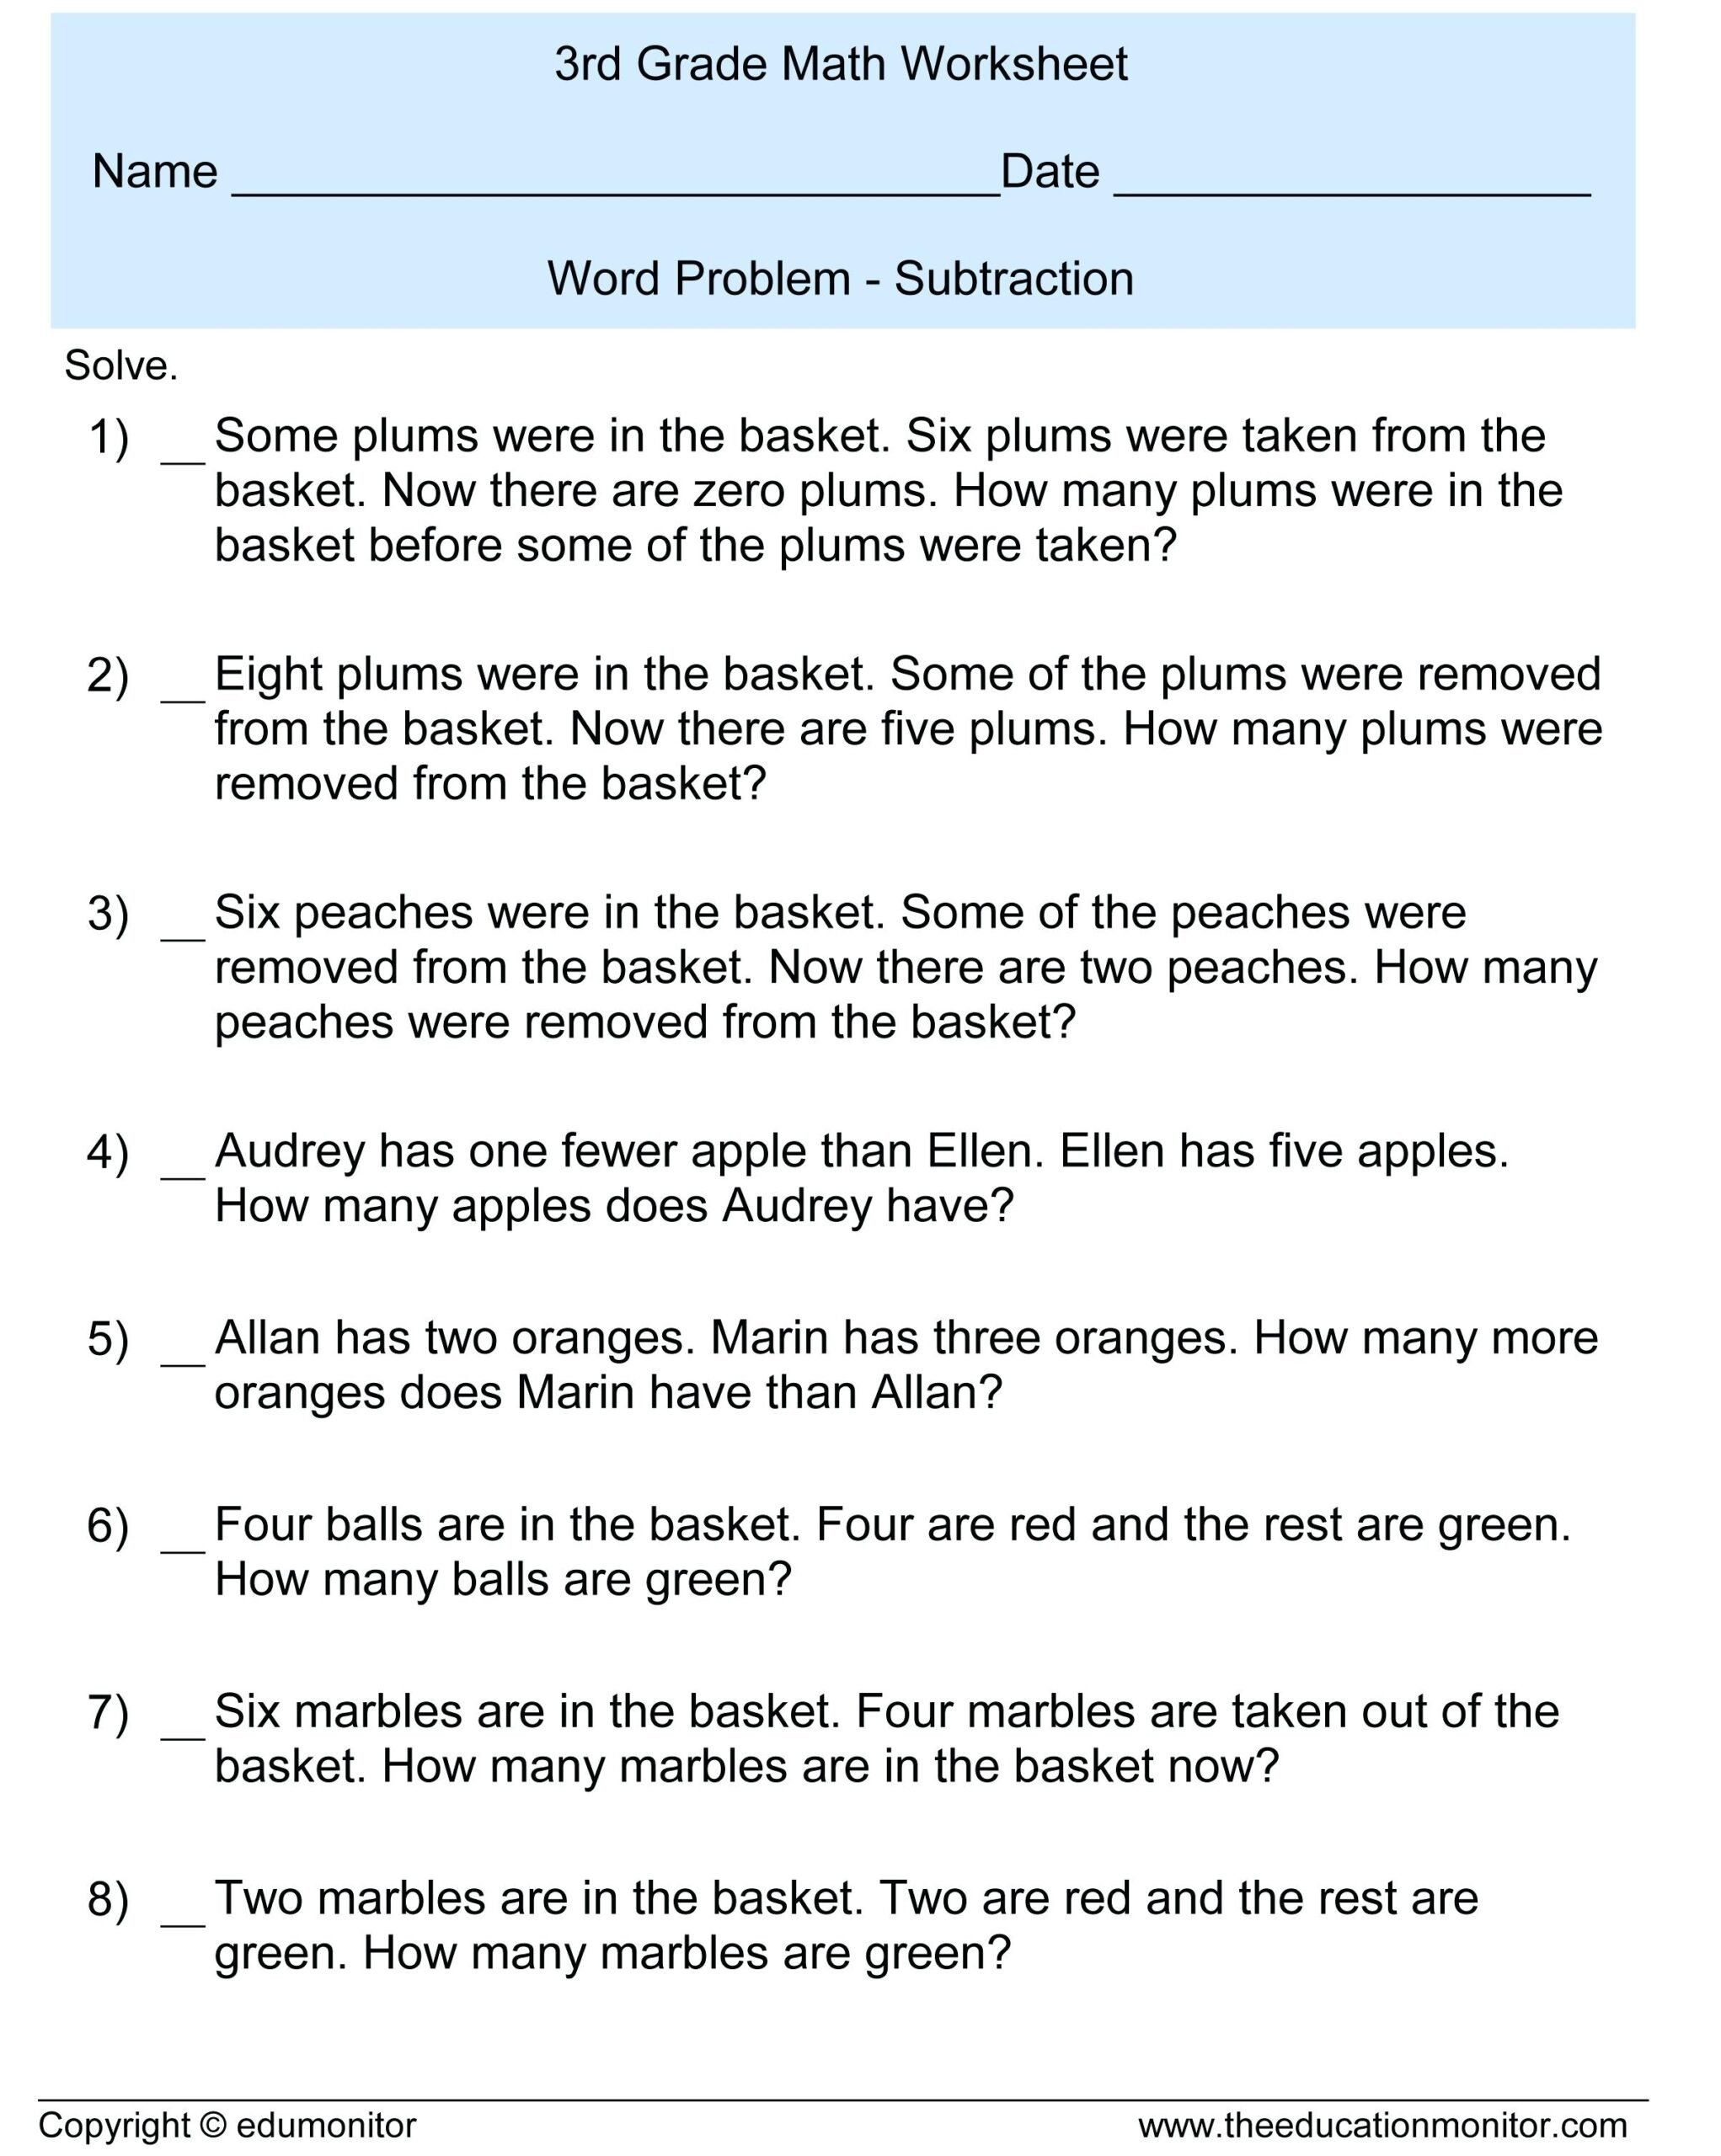 Simple Addition Word Problem Worksheets 3rd Grade Subtraction Word Problems Free Ma Word Problem Worksheets 3rd Grade Math Worksheets Subtraction Word Problems